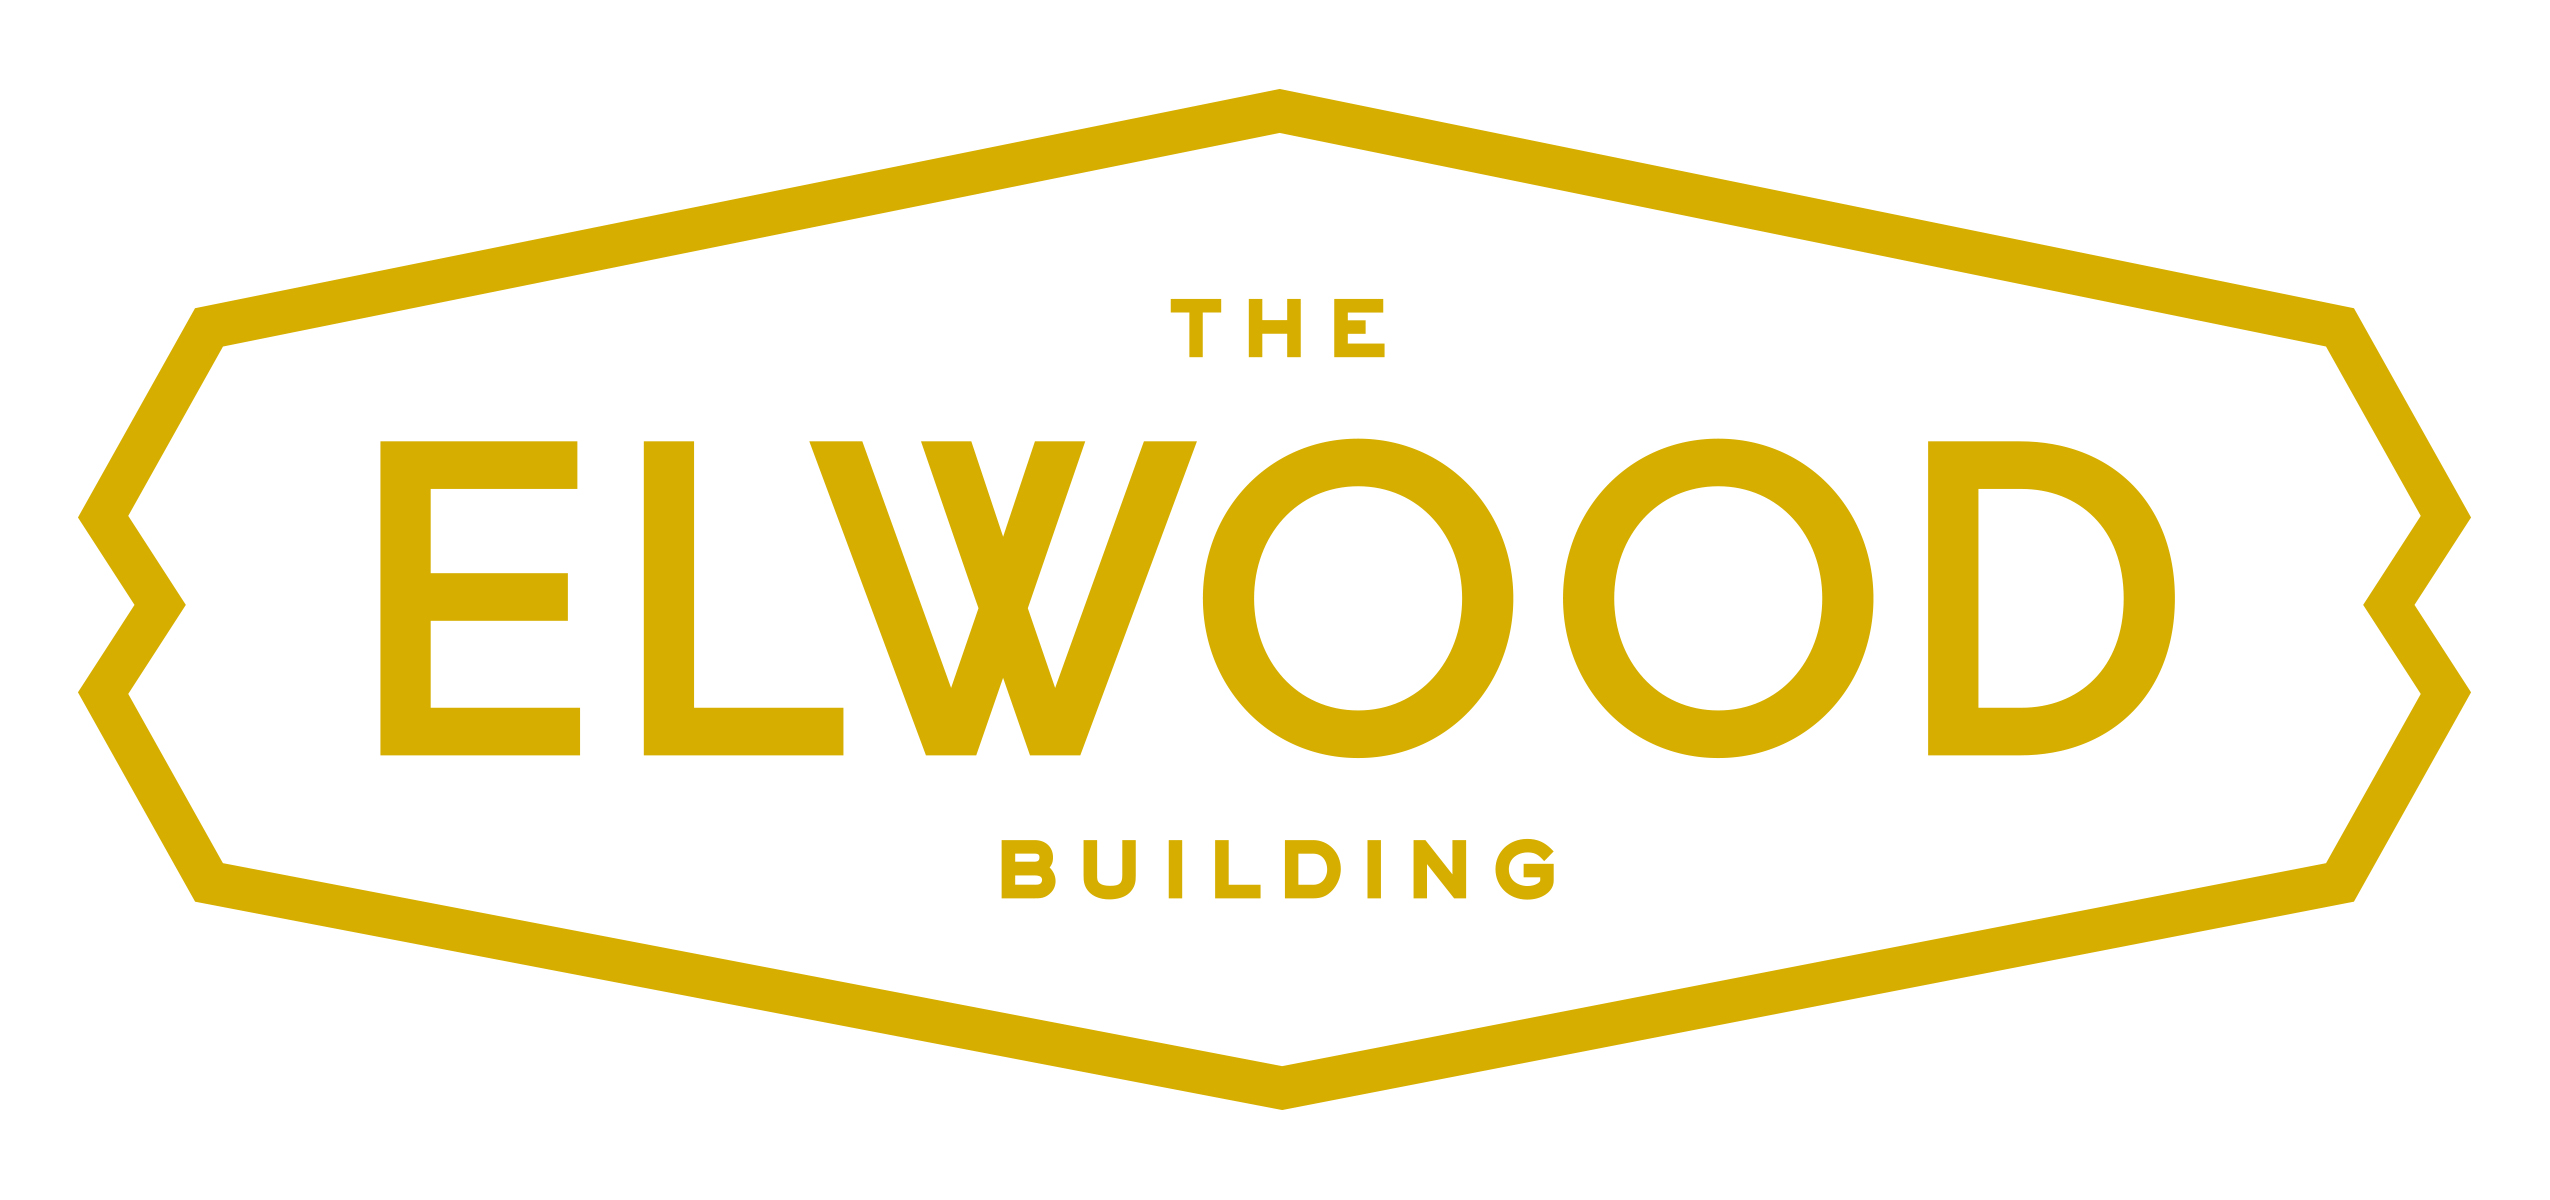 The Elwood Building